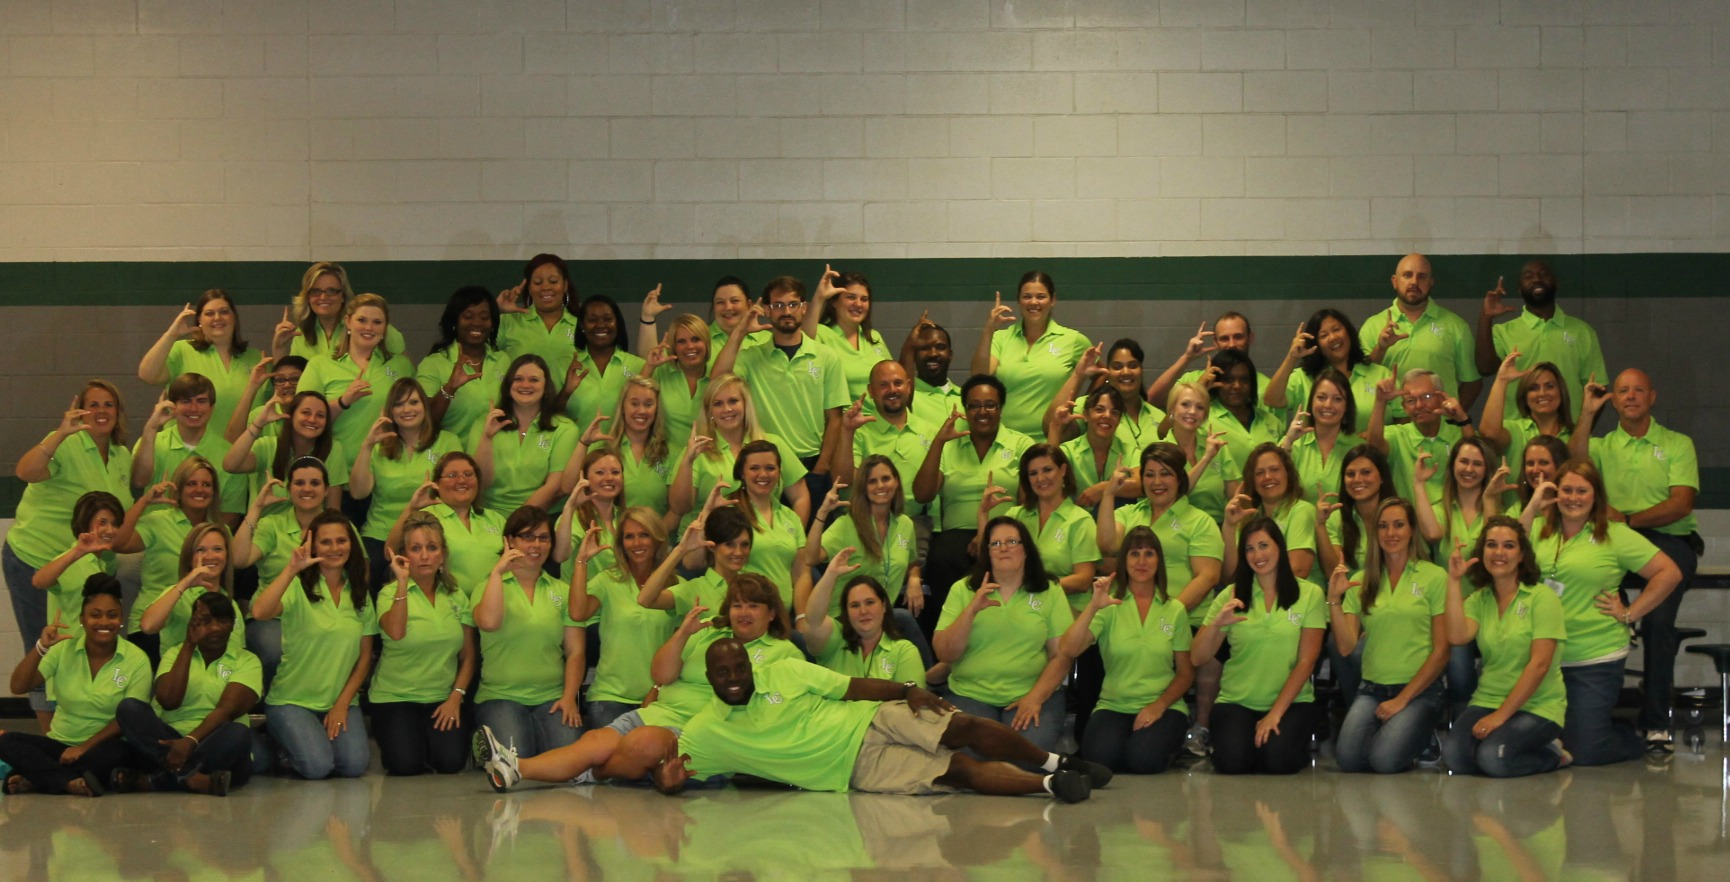 group wearing green shirts for R.O.C.K events